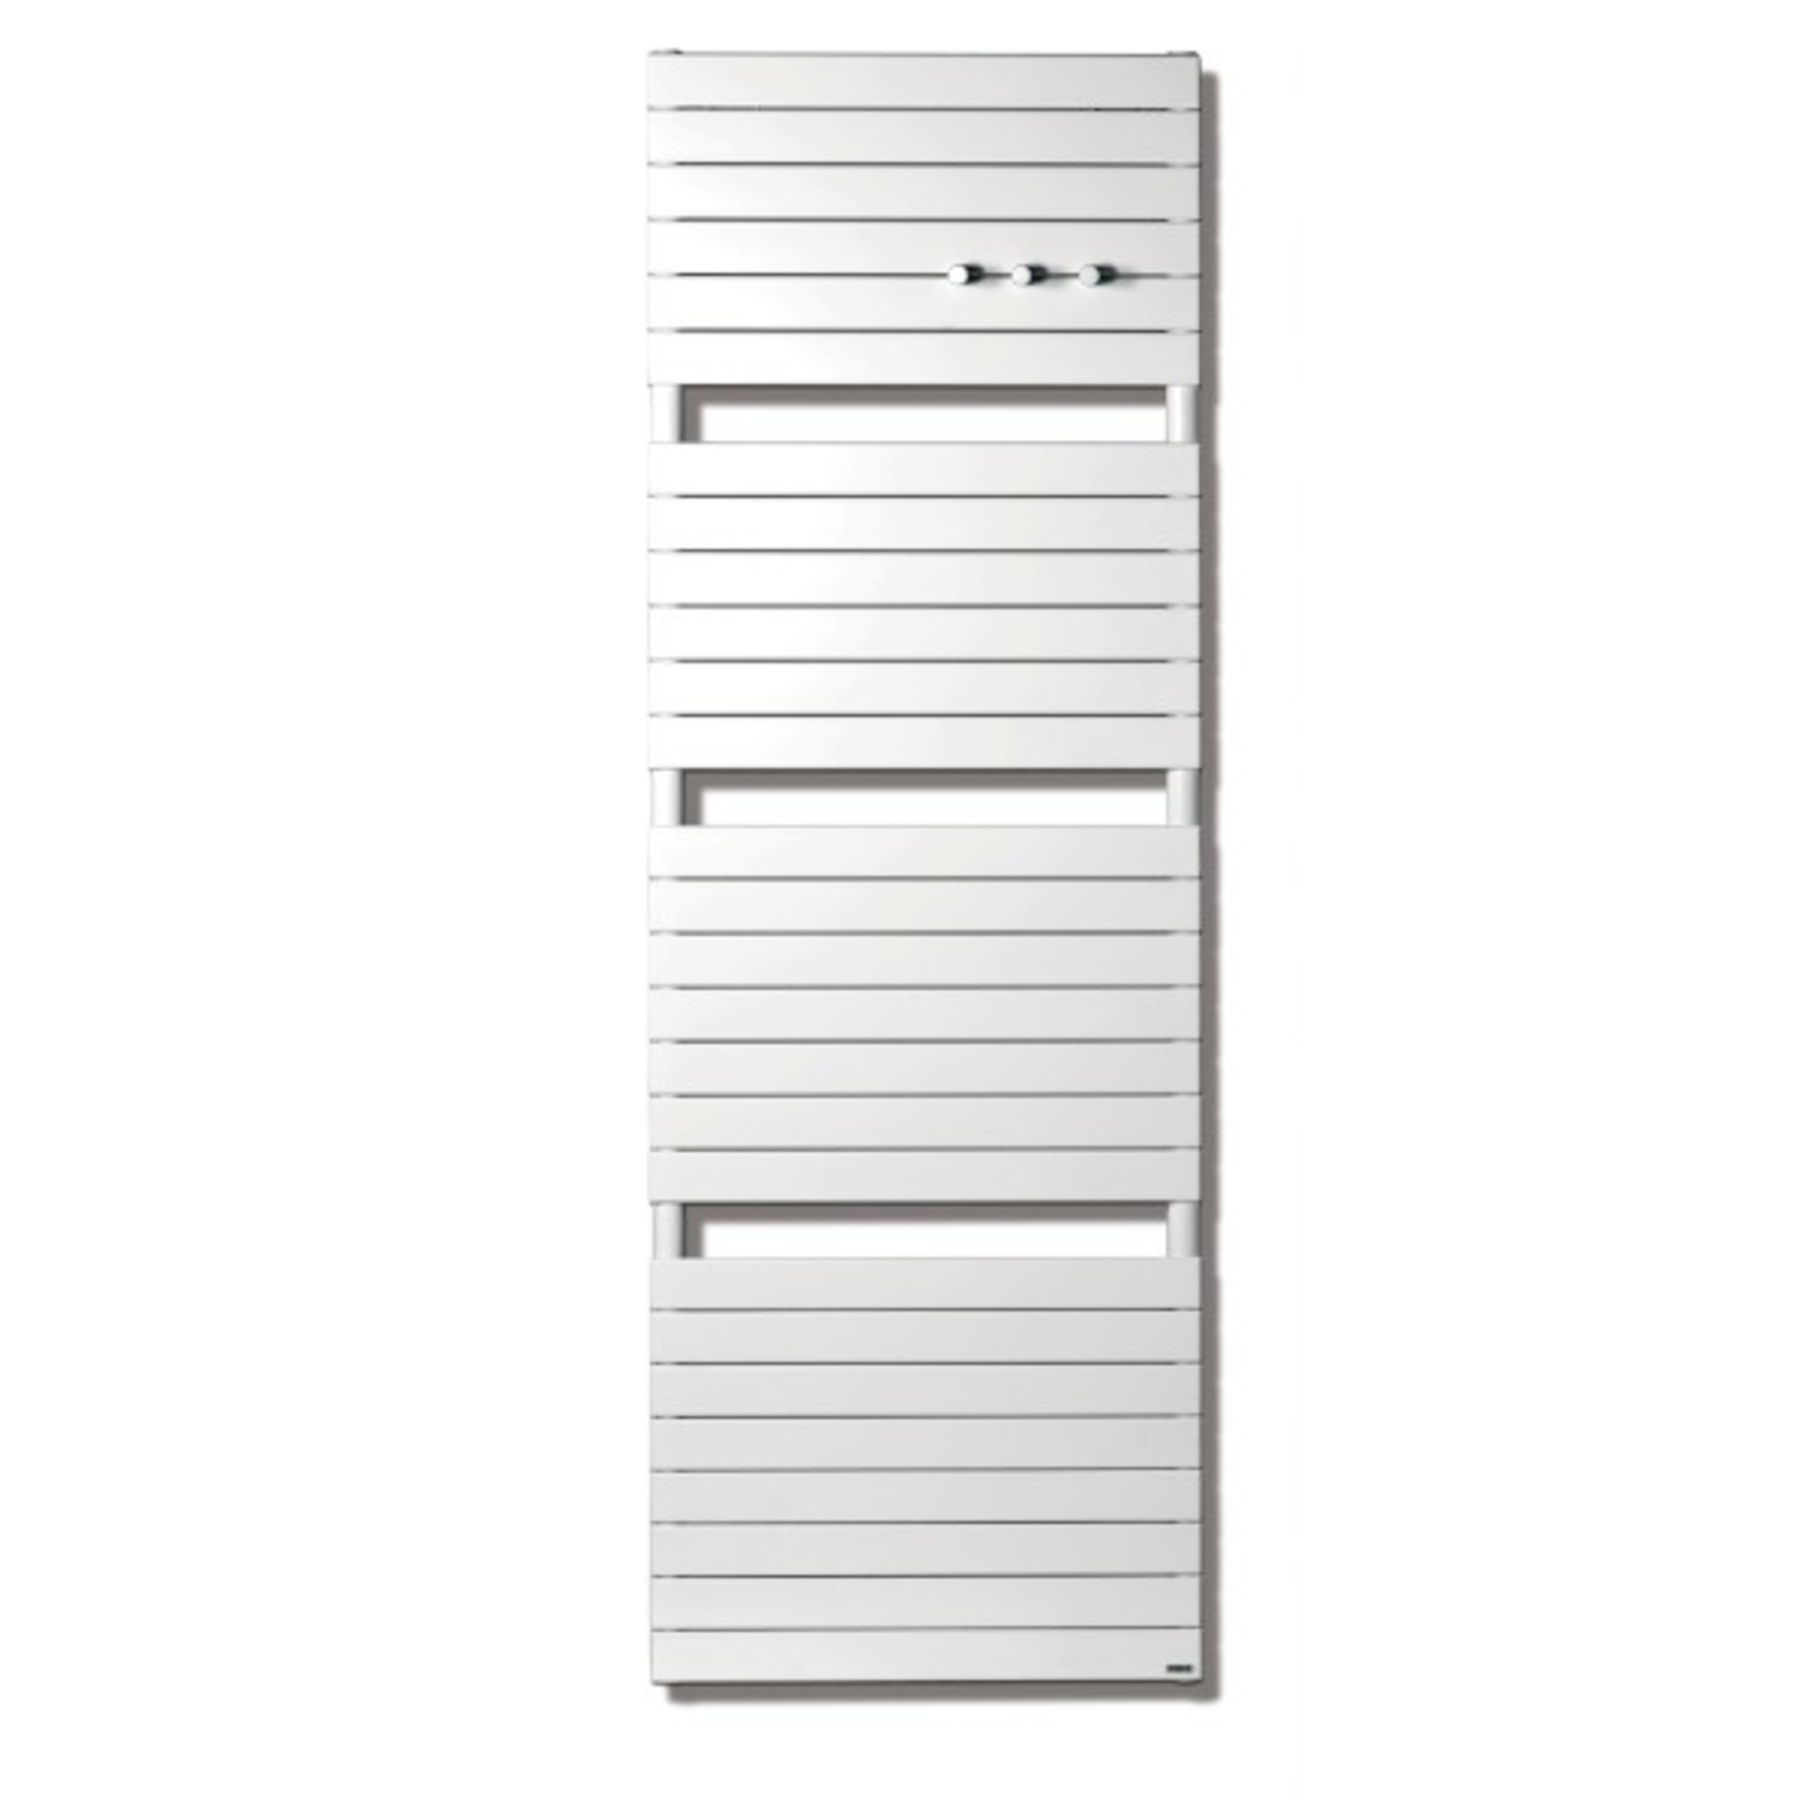 Vasco Aster HF designradiator horizontaal 600x1150mm 652 watt warmgrijs (N506)